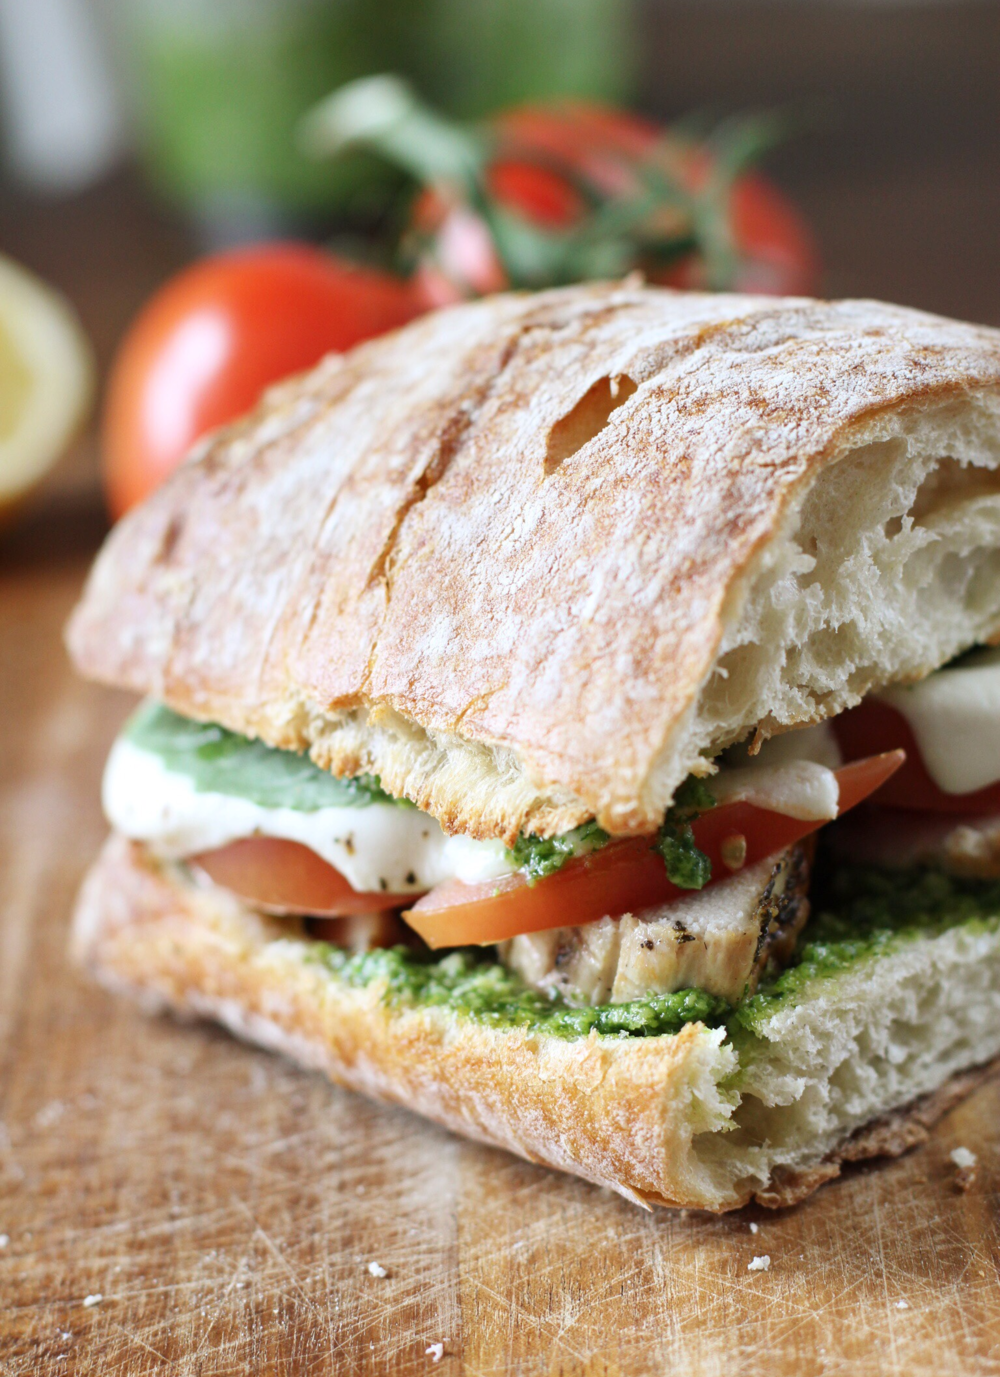 Chicken, tomato, and mozz melt with basil-arugula pesto - The Pastiche